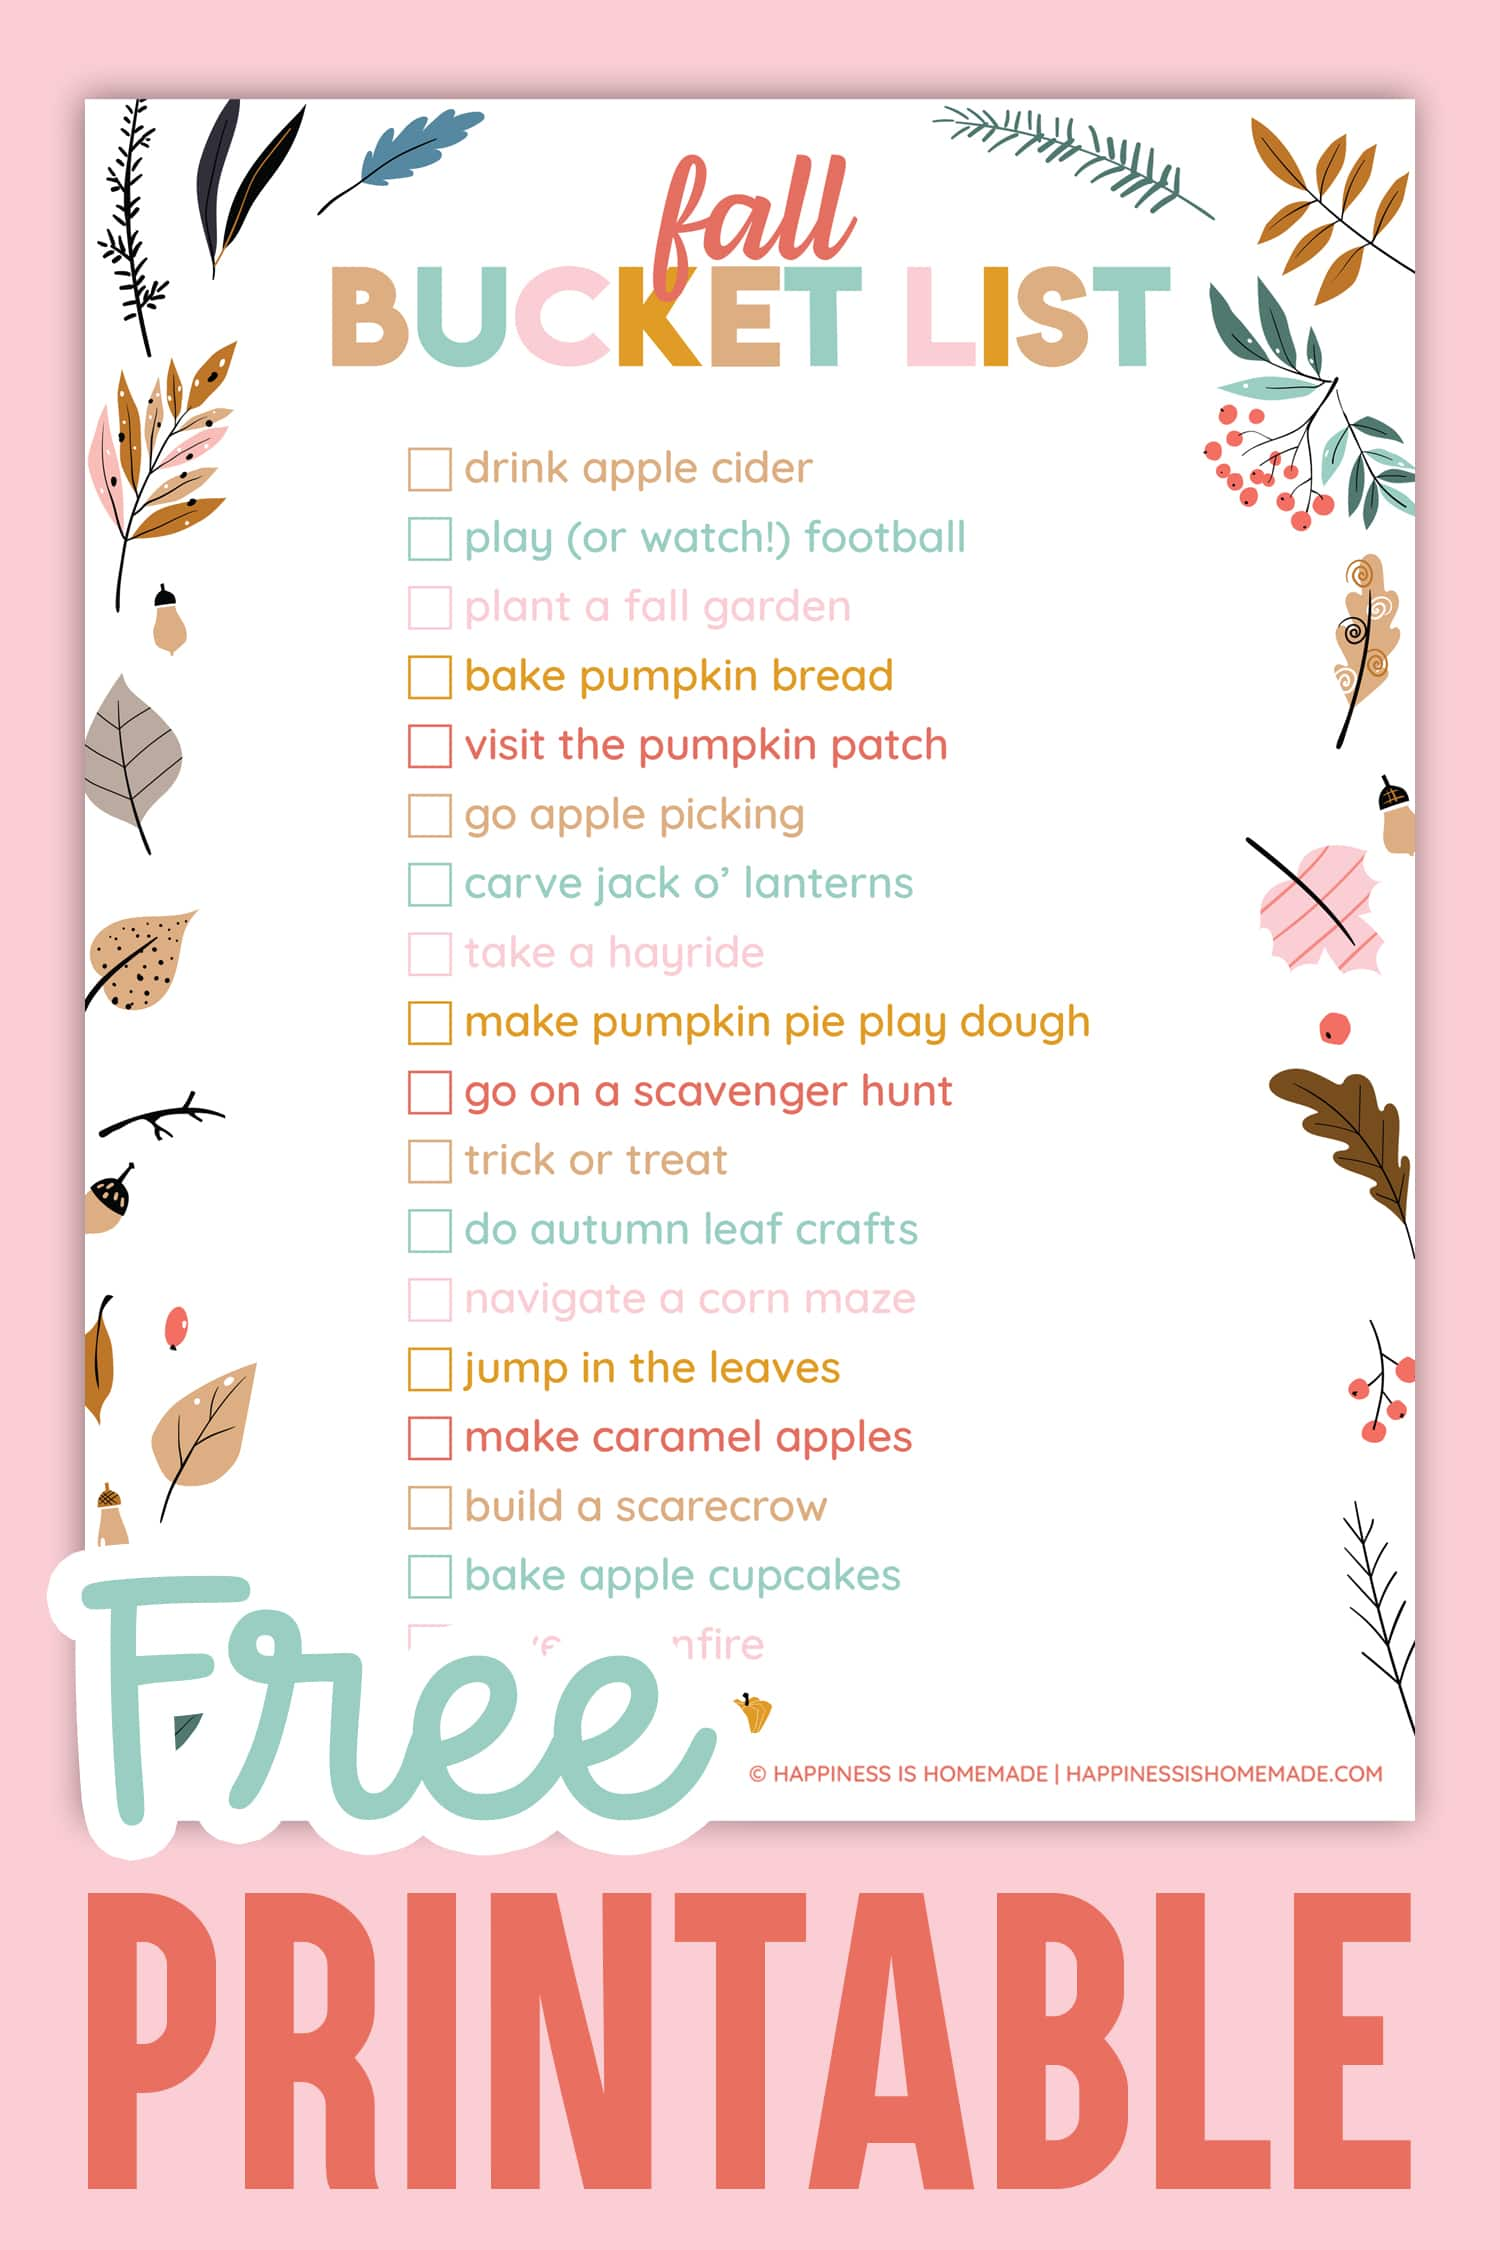 Printable Fall Bucket List Ideas on pink background